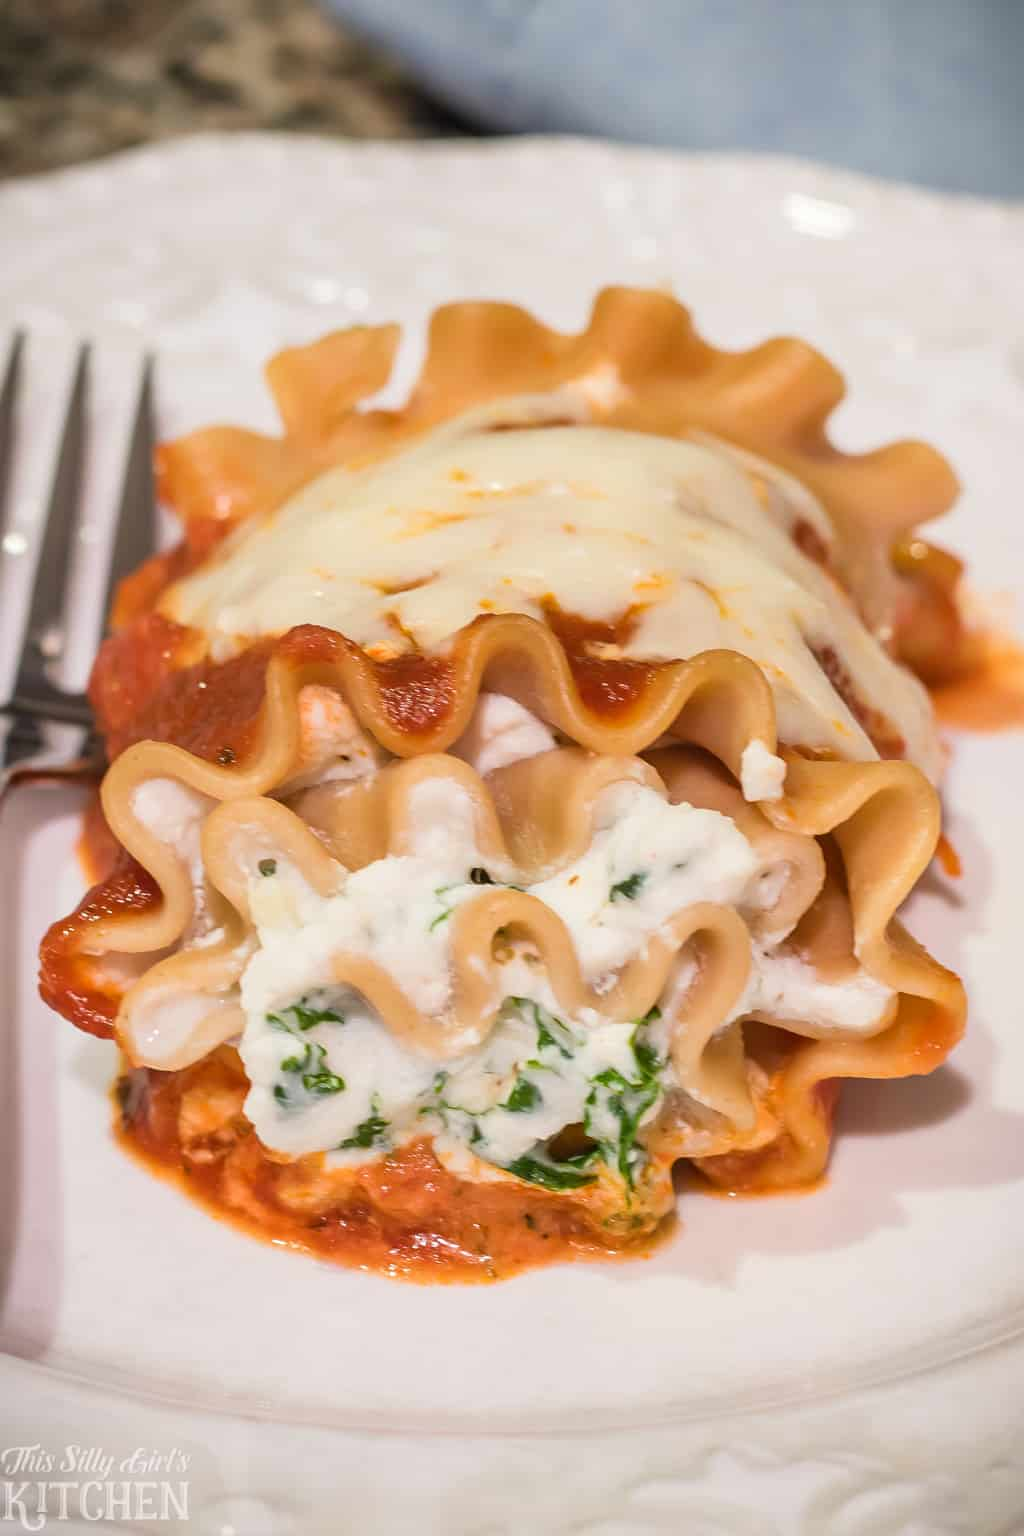 Lasagna Roll-Ups, little packages filled with ricotta cheese and sauteed kale, a lightened up recipe full of flavor! #Recipe from ThisSillyGirlsKitchen.com #lasagna #skinny #lasagnarolls